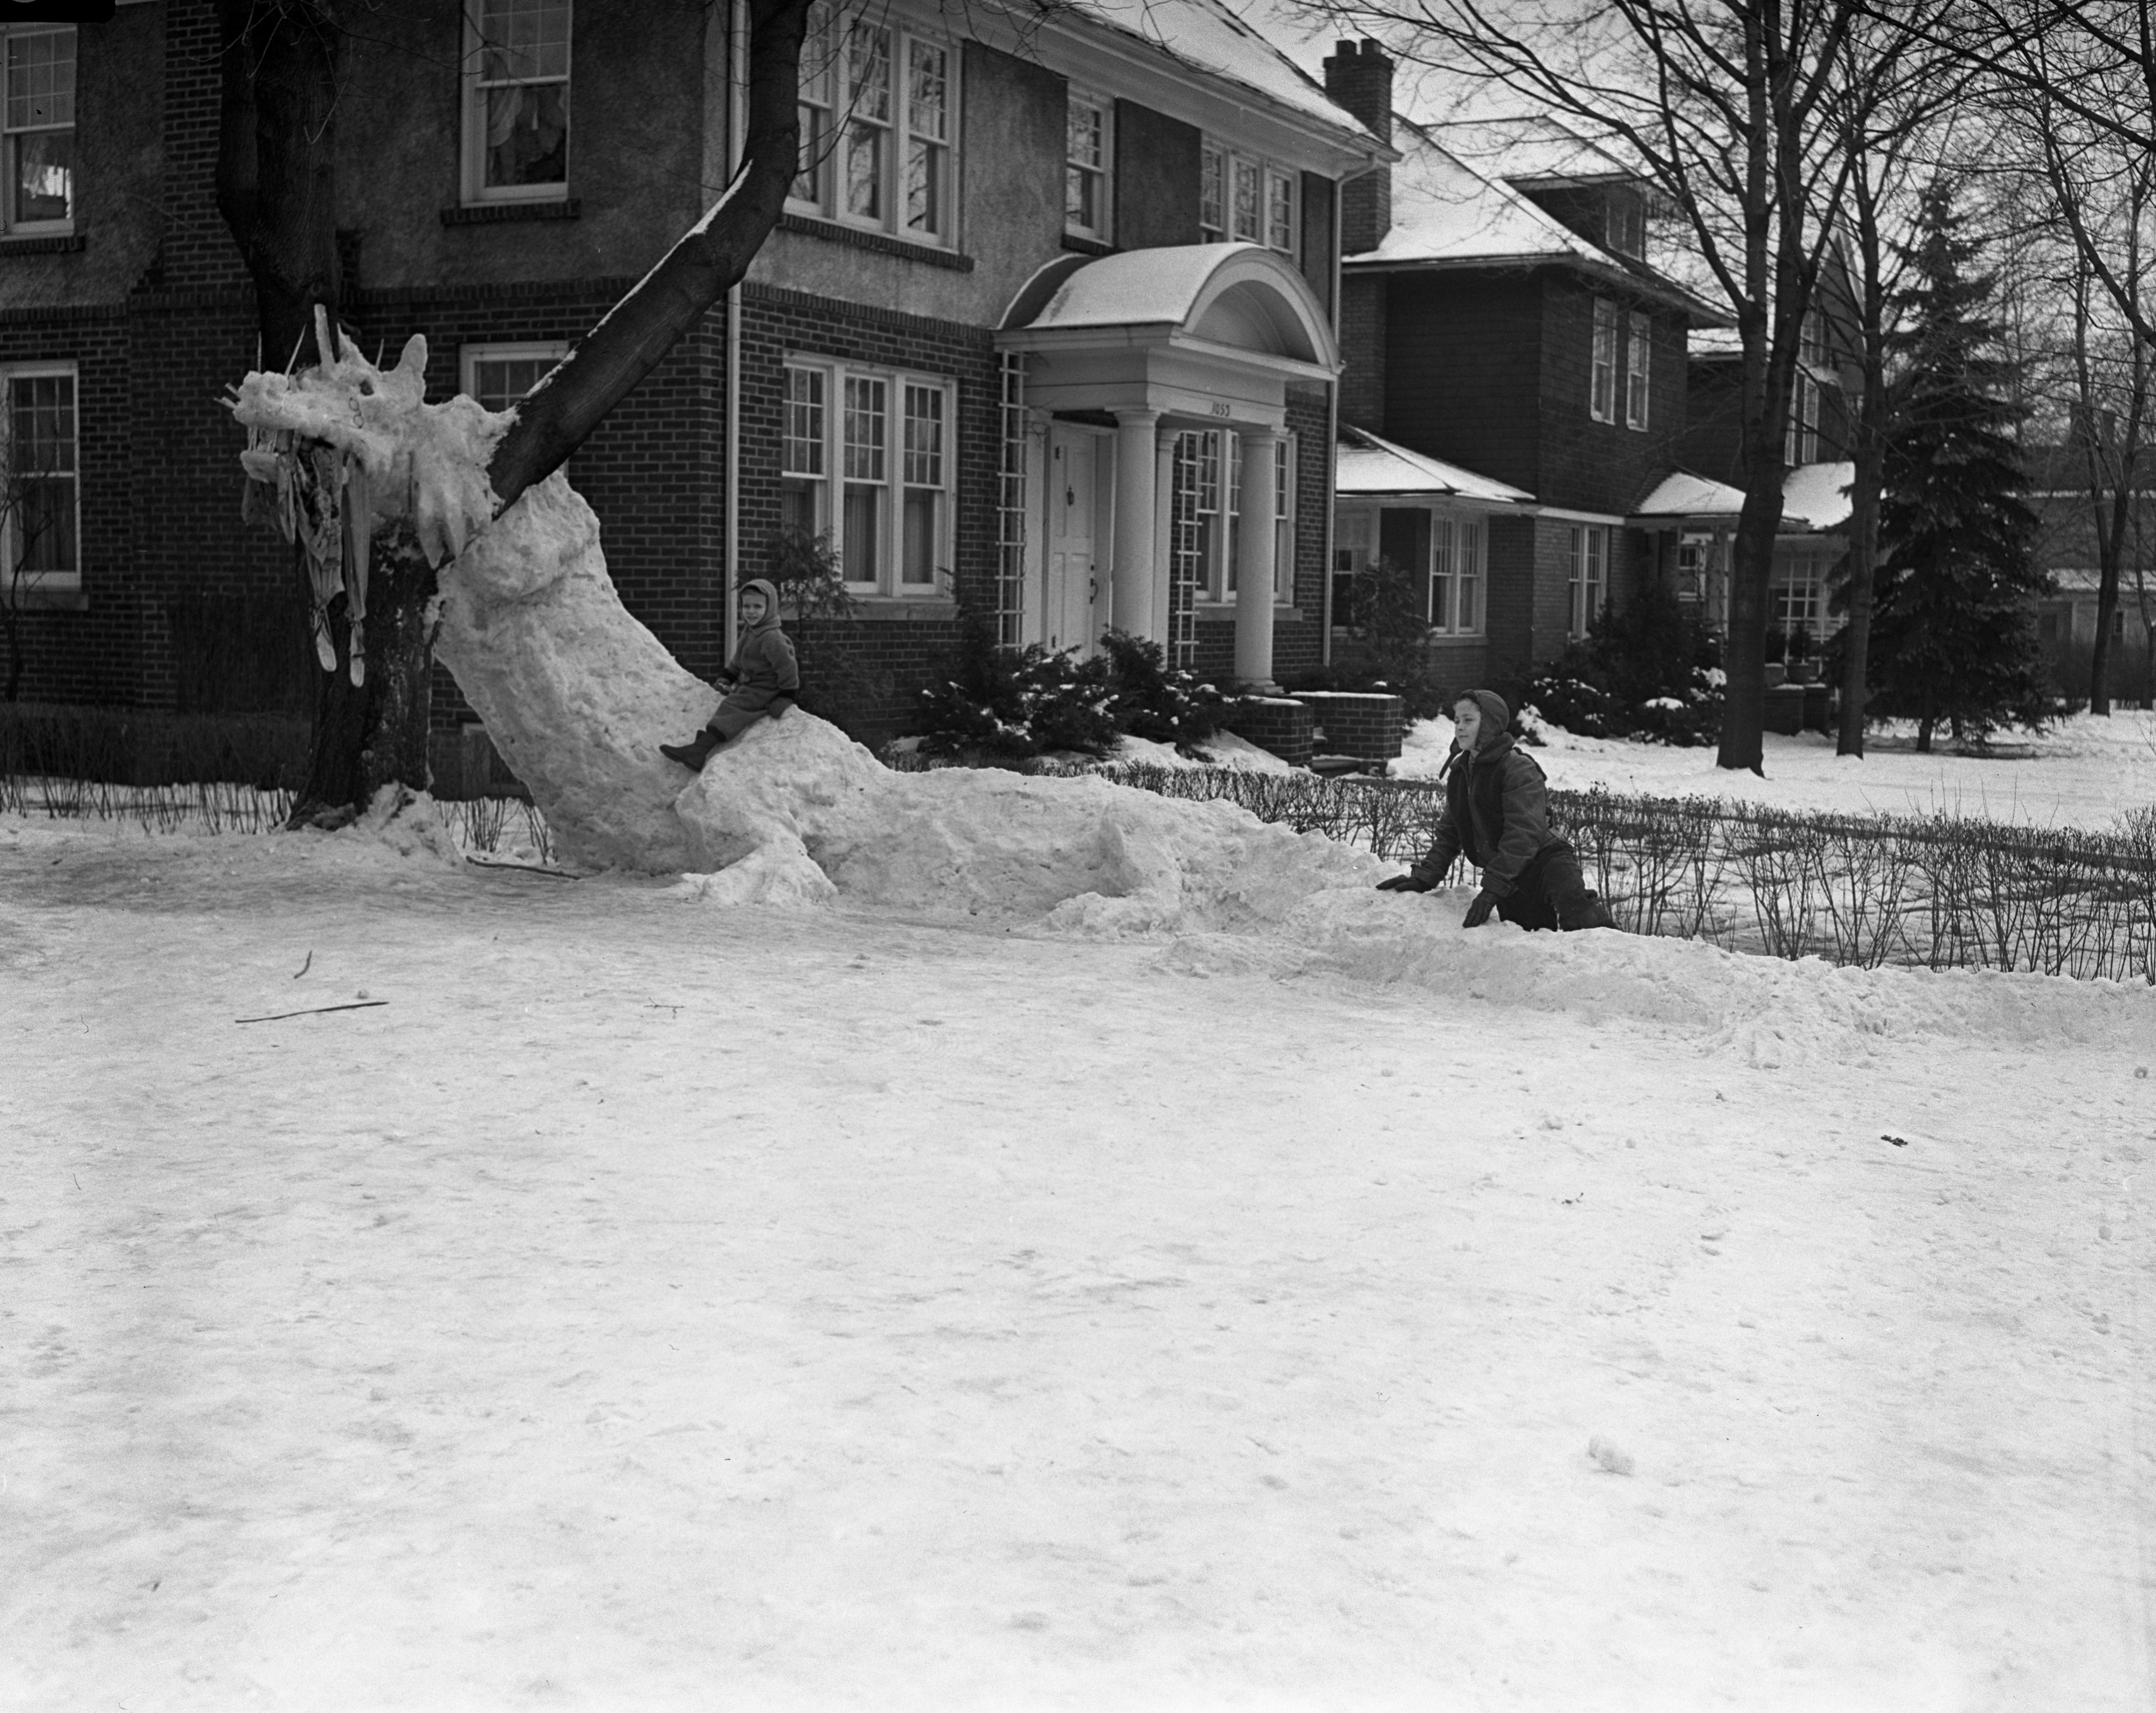 Snow Dragon in the yard of U-M professor and sculptor, Avard T. Fairbanks, February 1942 image